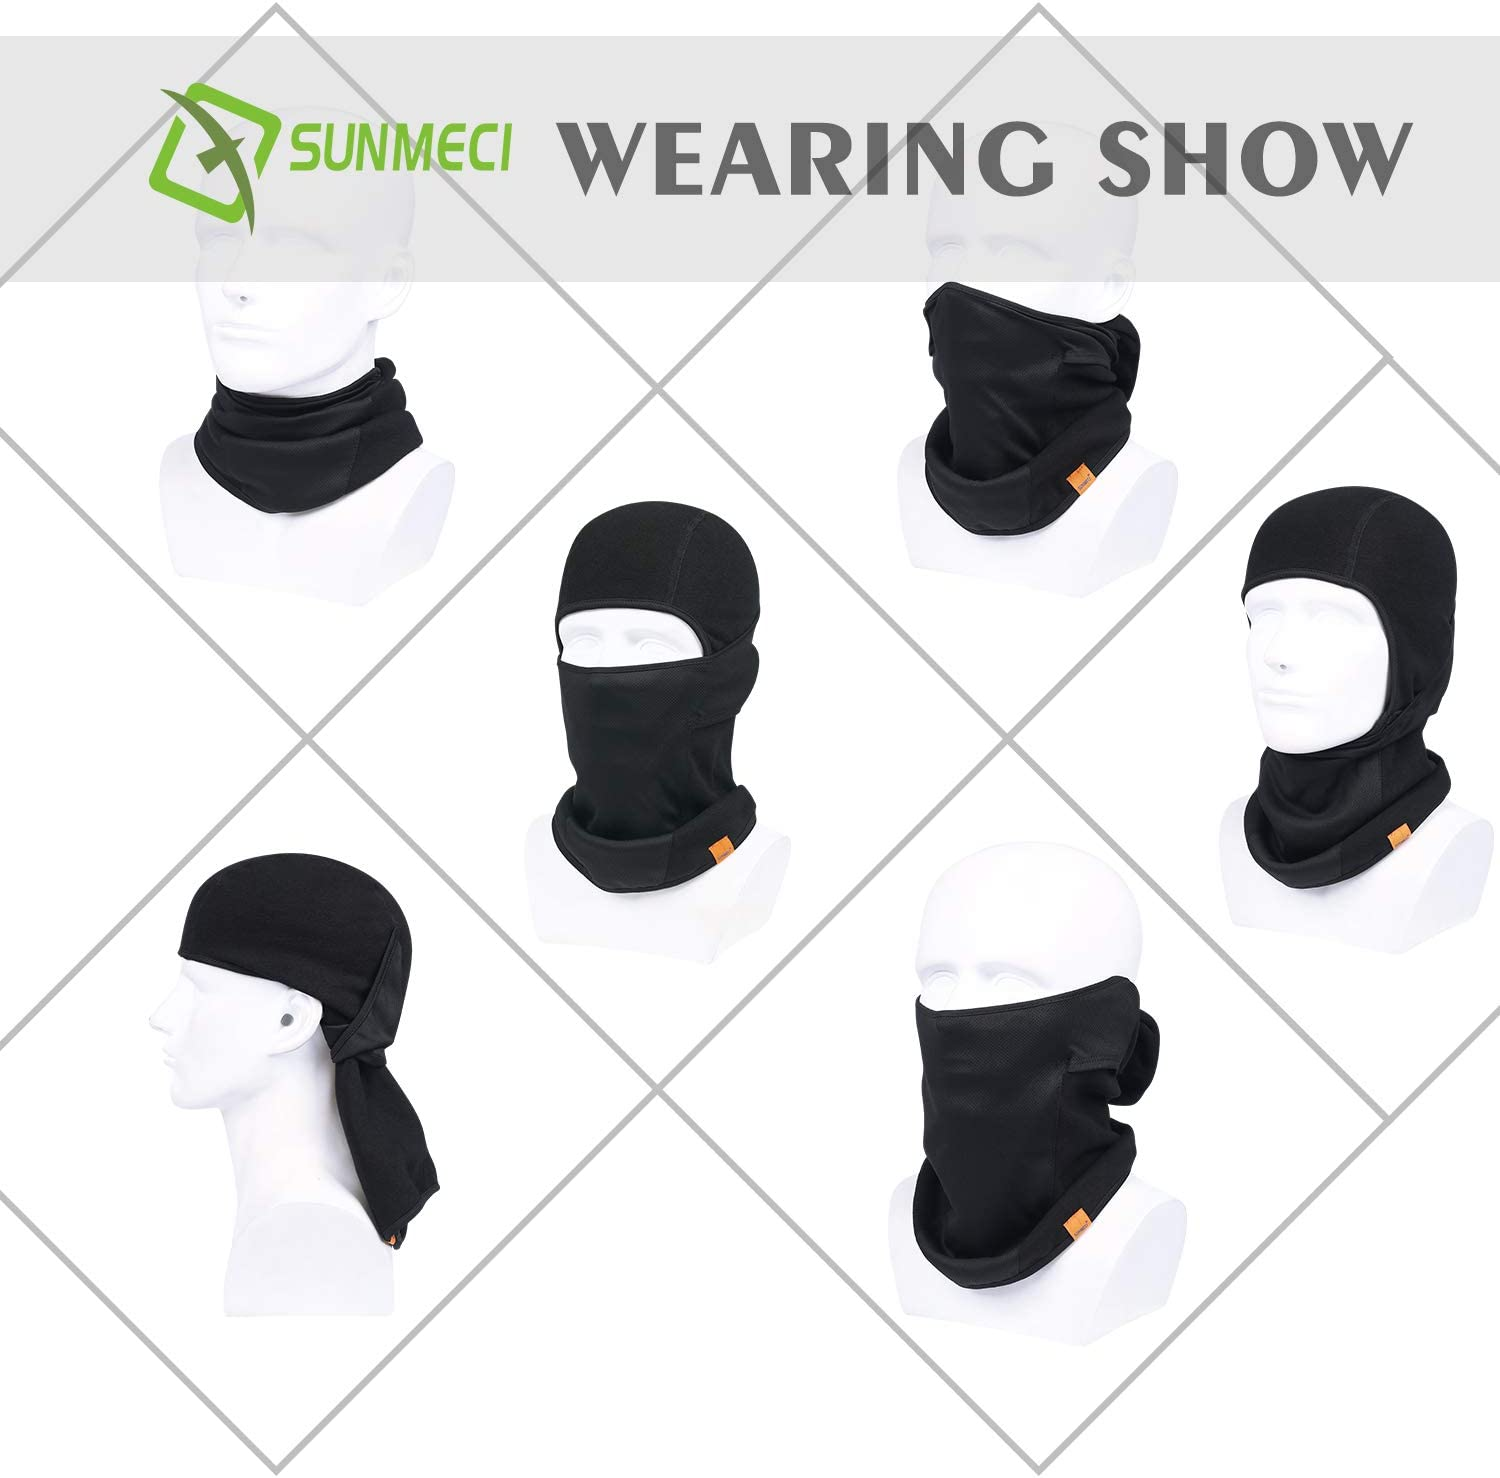 Windproof and Warmer Fleece Cold Weather Face Mask in Winter for Skiing Snowboarding Motorcycling Balaclava Ski Mask